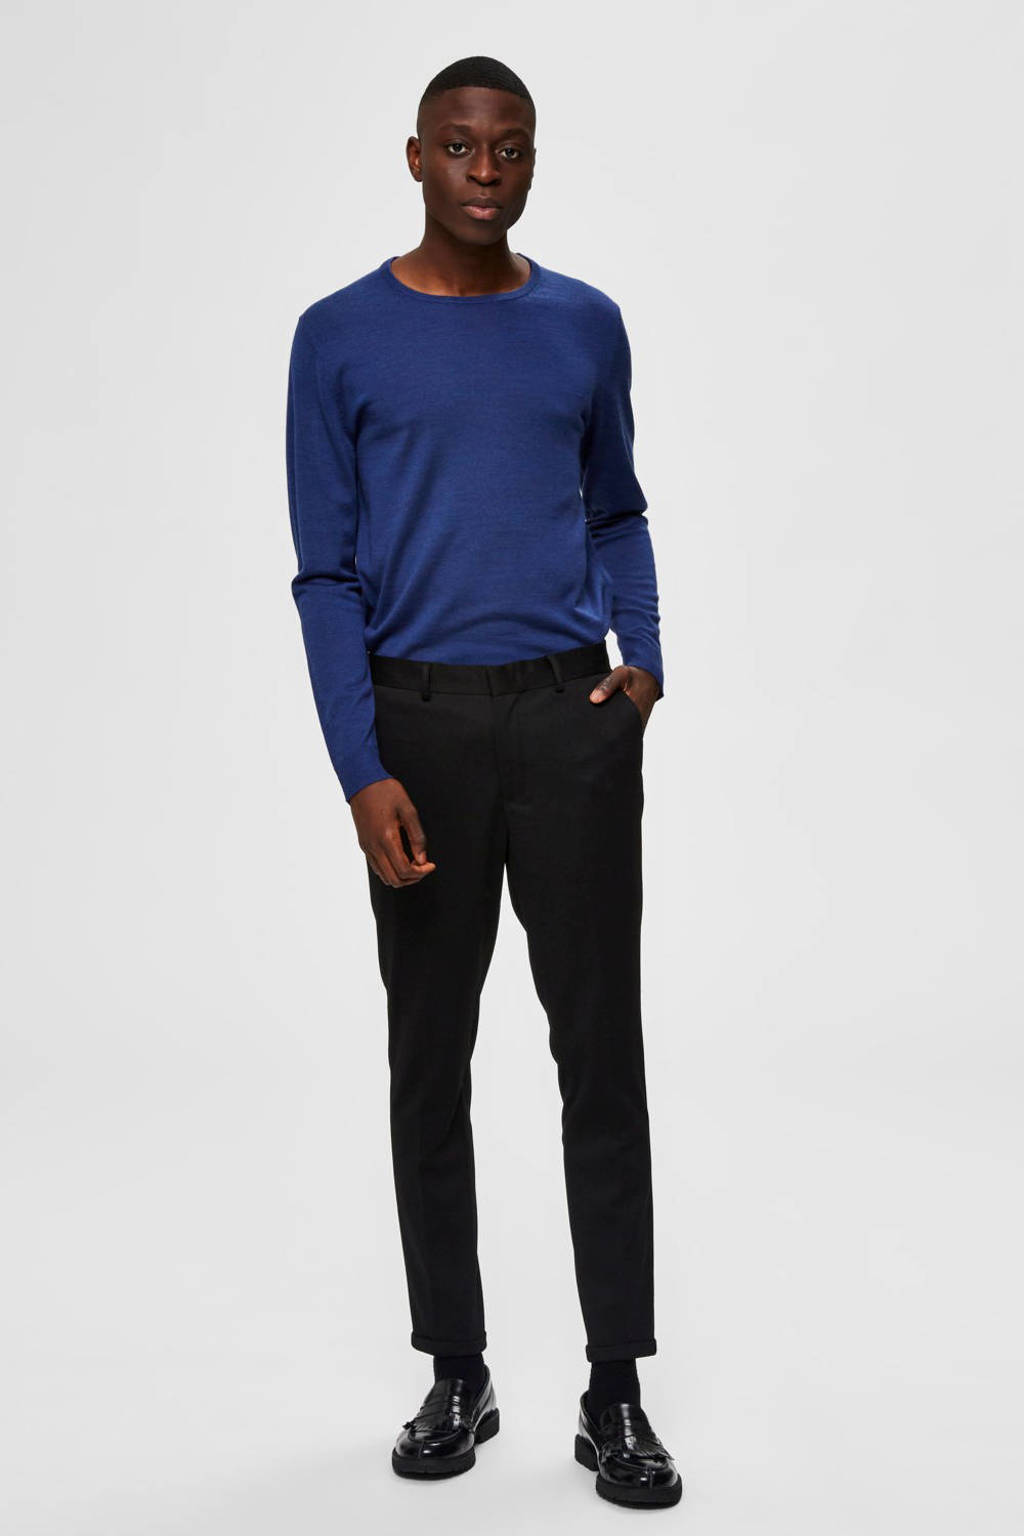 SELECTED HOMME wollen trui donkerblauw, Donkerblauw